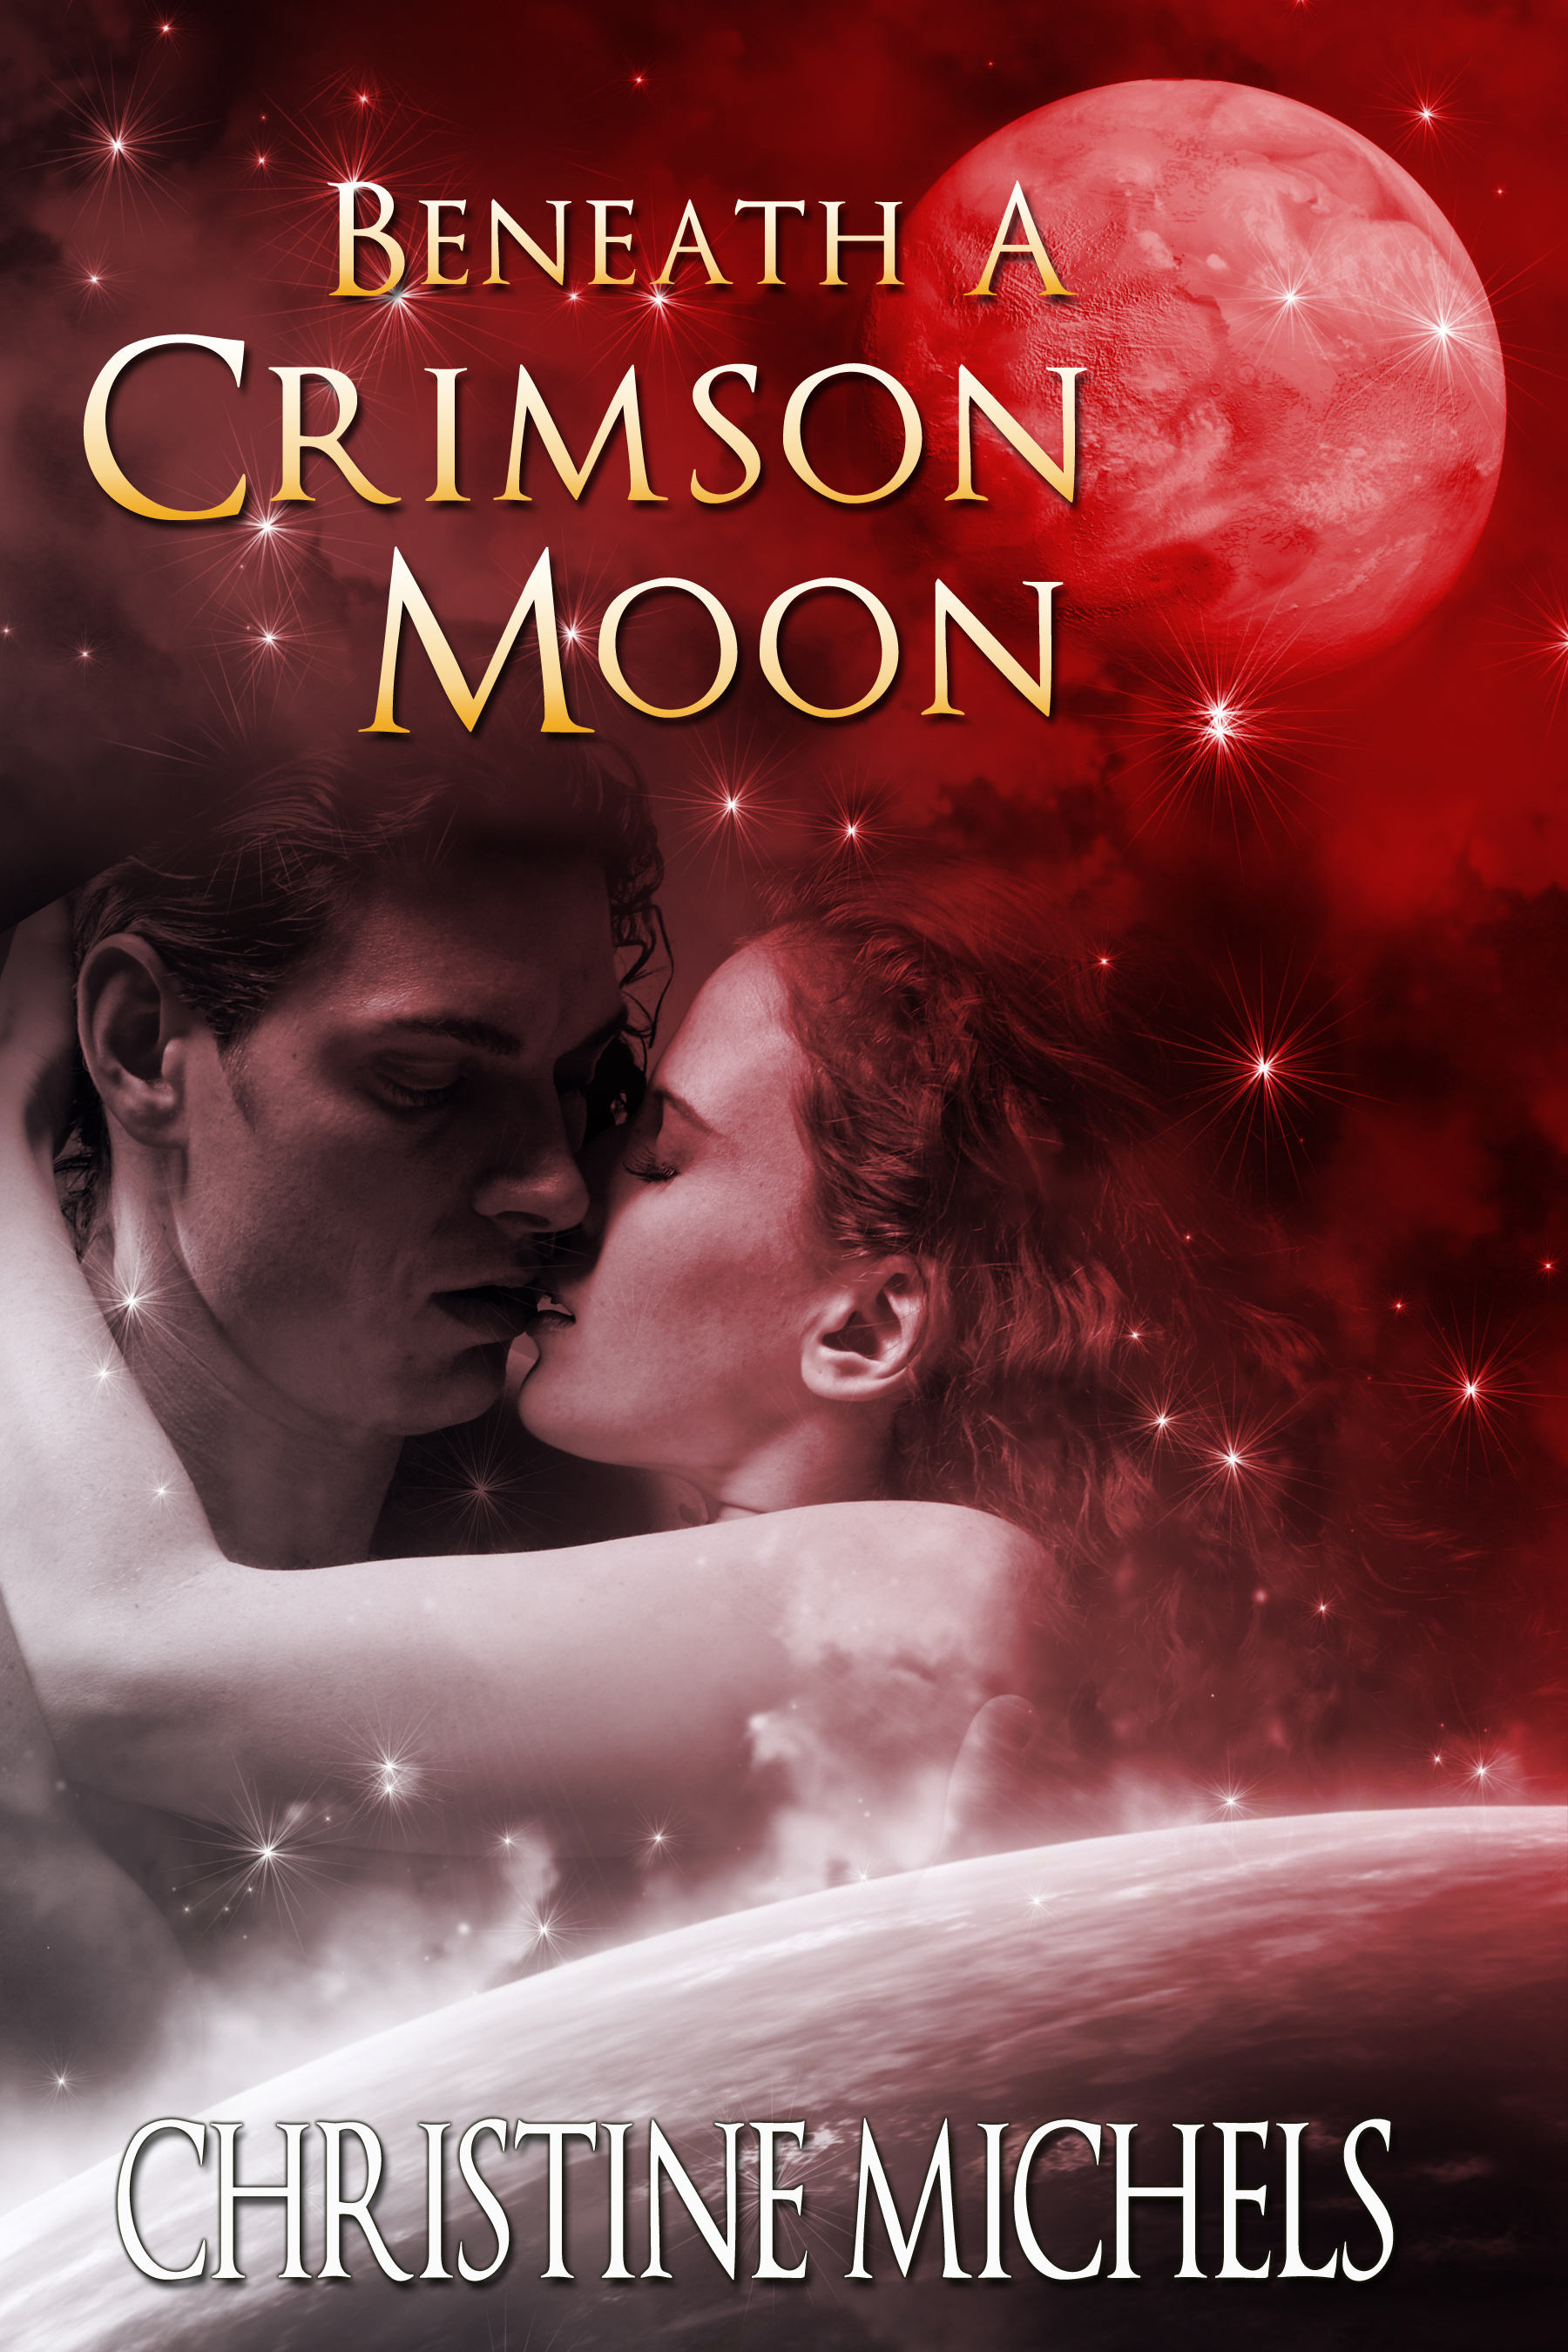 Beneath A Crimson Moon